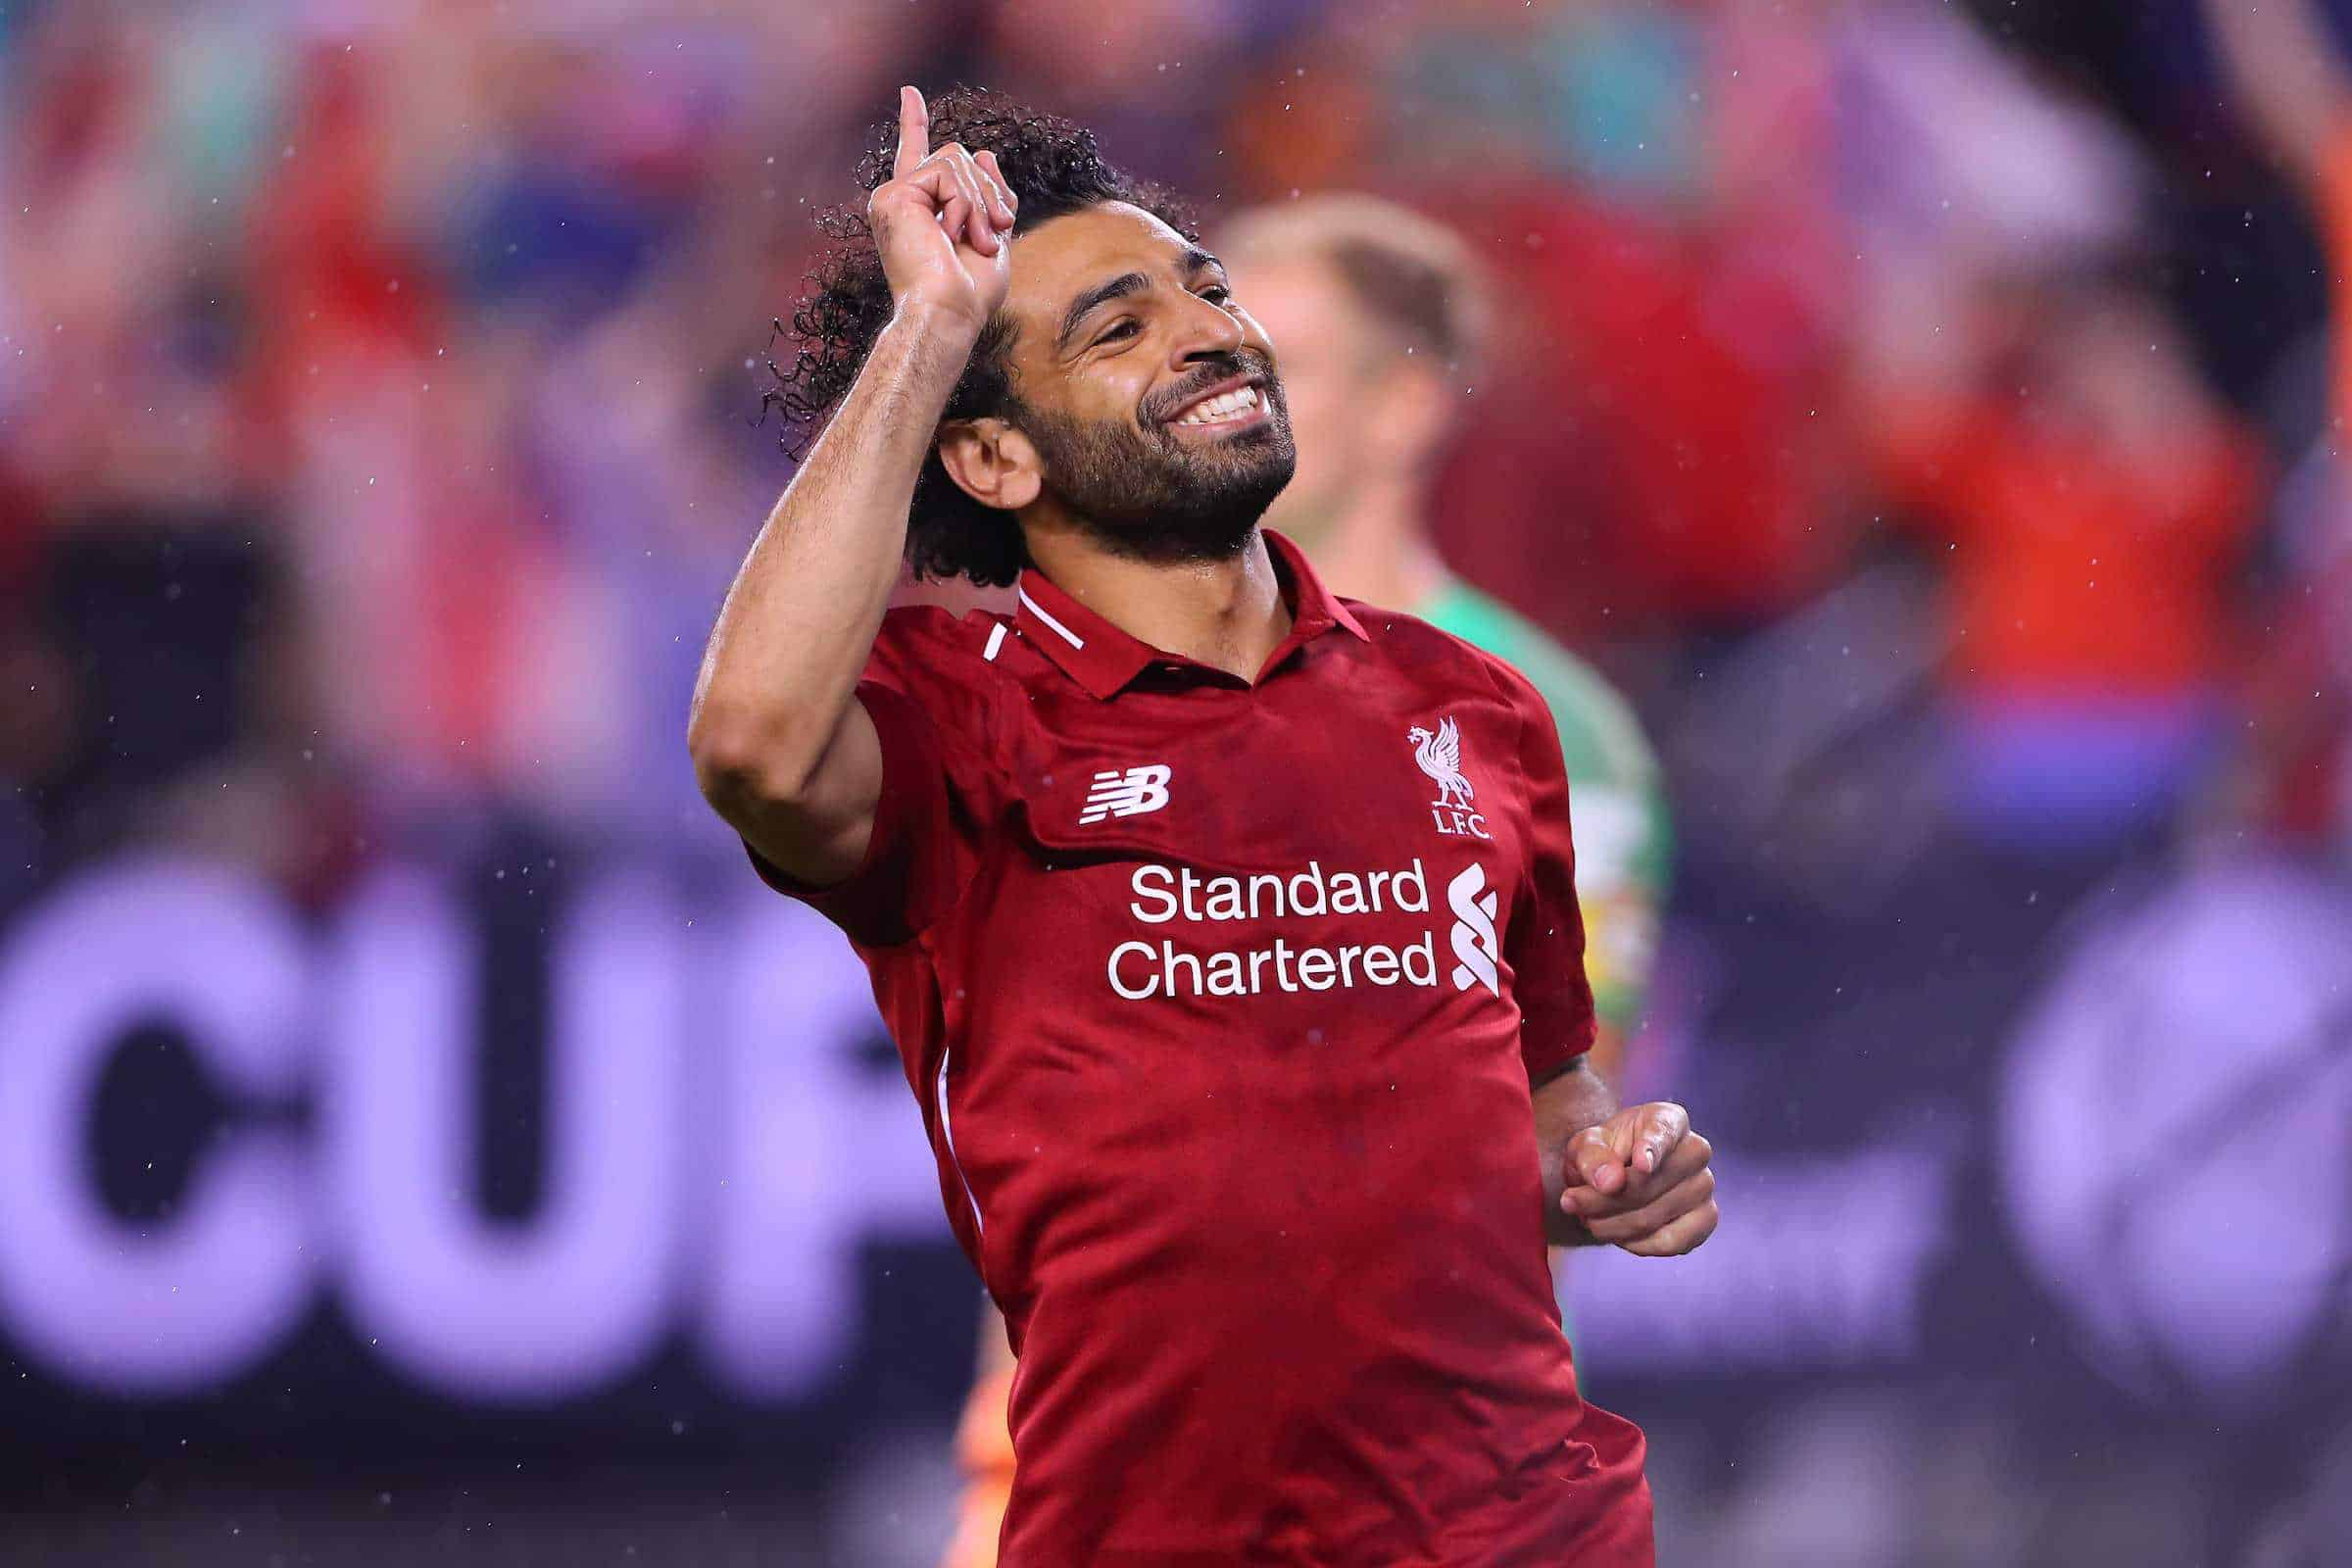 July 25, 2018 - East Rutherford, NJ, U.S. - EAST RUTHERFORD, NJ - JULY 25: Liverpool midfielder Mohamed Salah (11) celebrates after he scores during the second half of the International Champions Cup Soccer game between Liverpool and Manchester City on July 25, 2018 at Met Life Stadium in East Rutherford, NJ. (Photo by Rich Graessle/Icon Sportswire) (Credit Image: © Rich Graessle/Icon SMI via ZUMA Press)